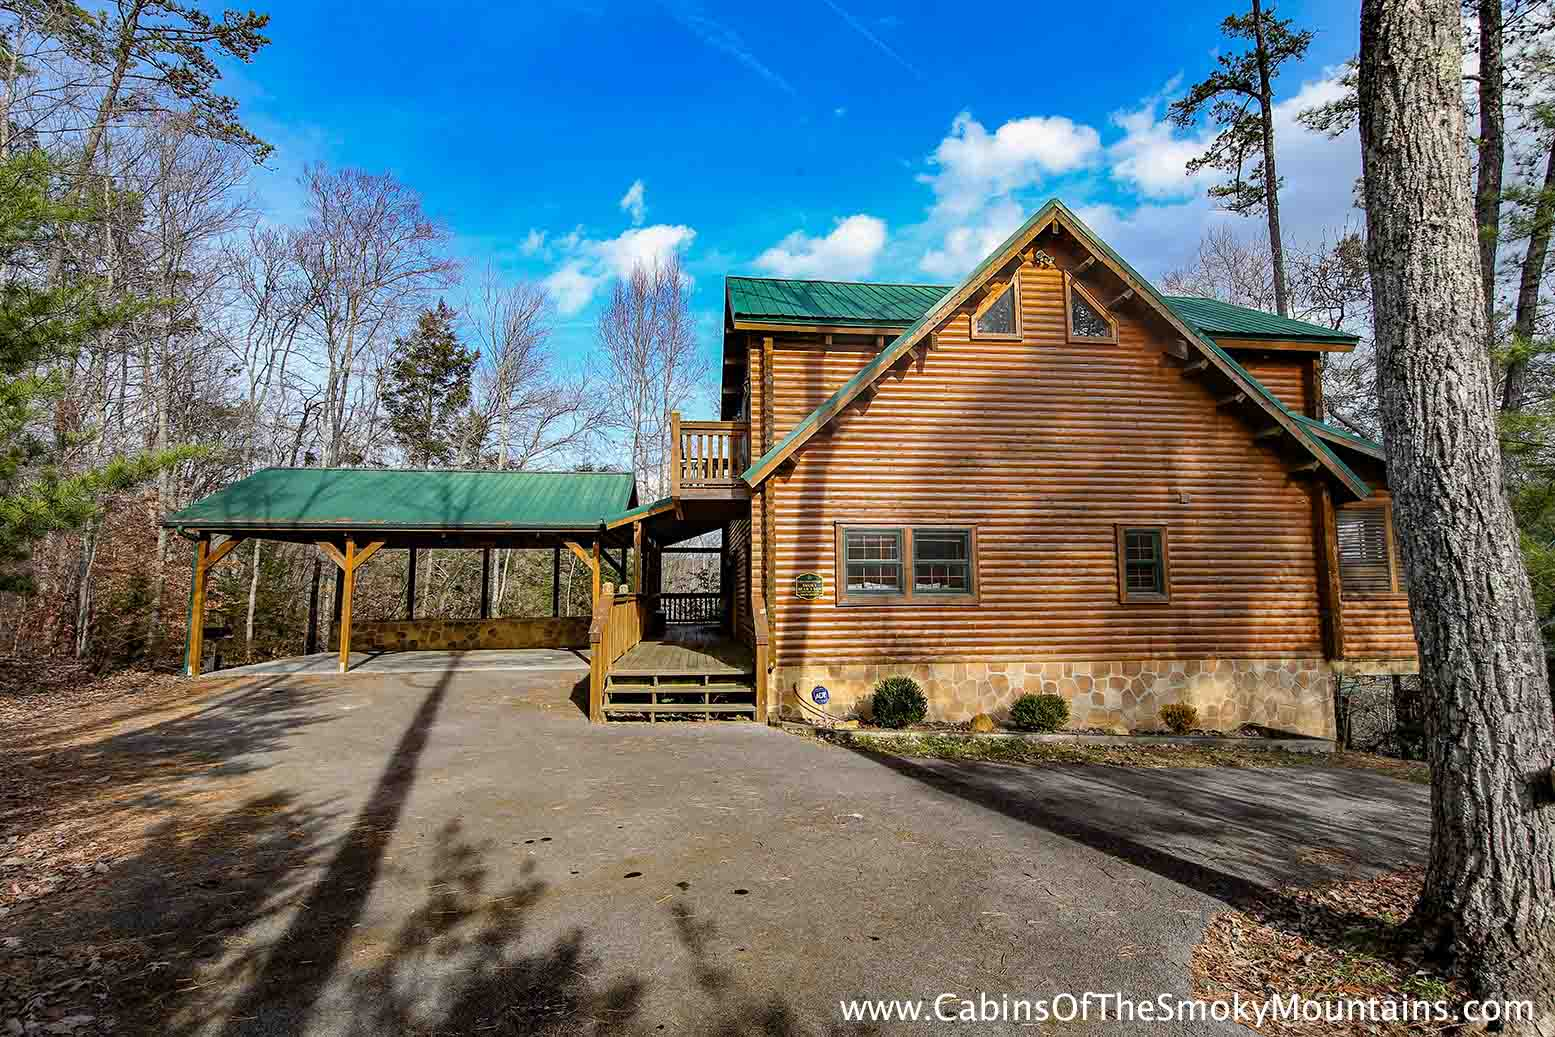 Pigeon forge cabin smoky bear 39 s den 5 bedroom sleeps 14 for Rent cabin smoky mountains